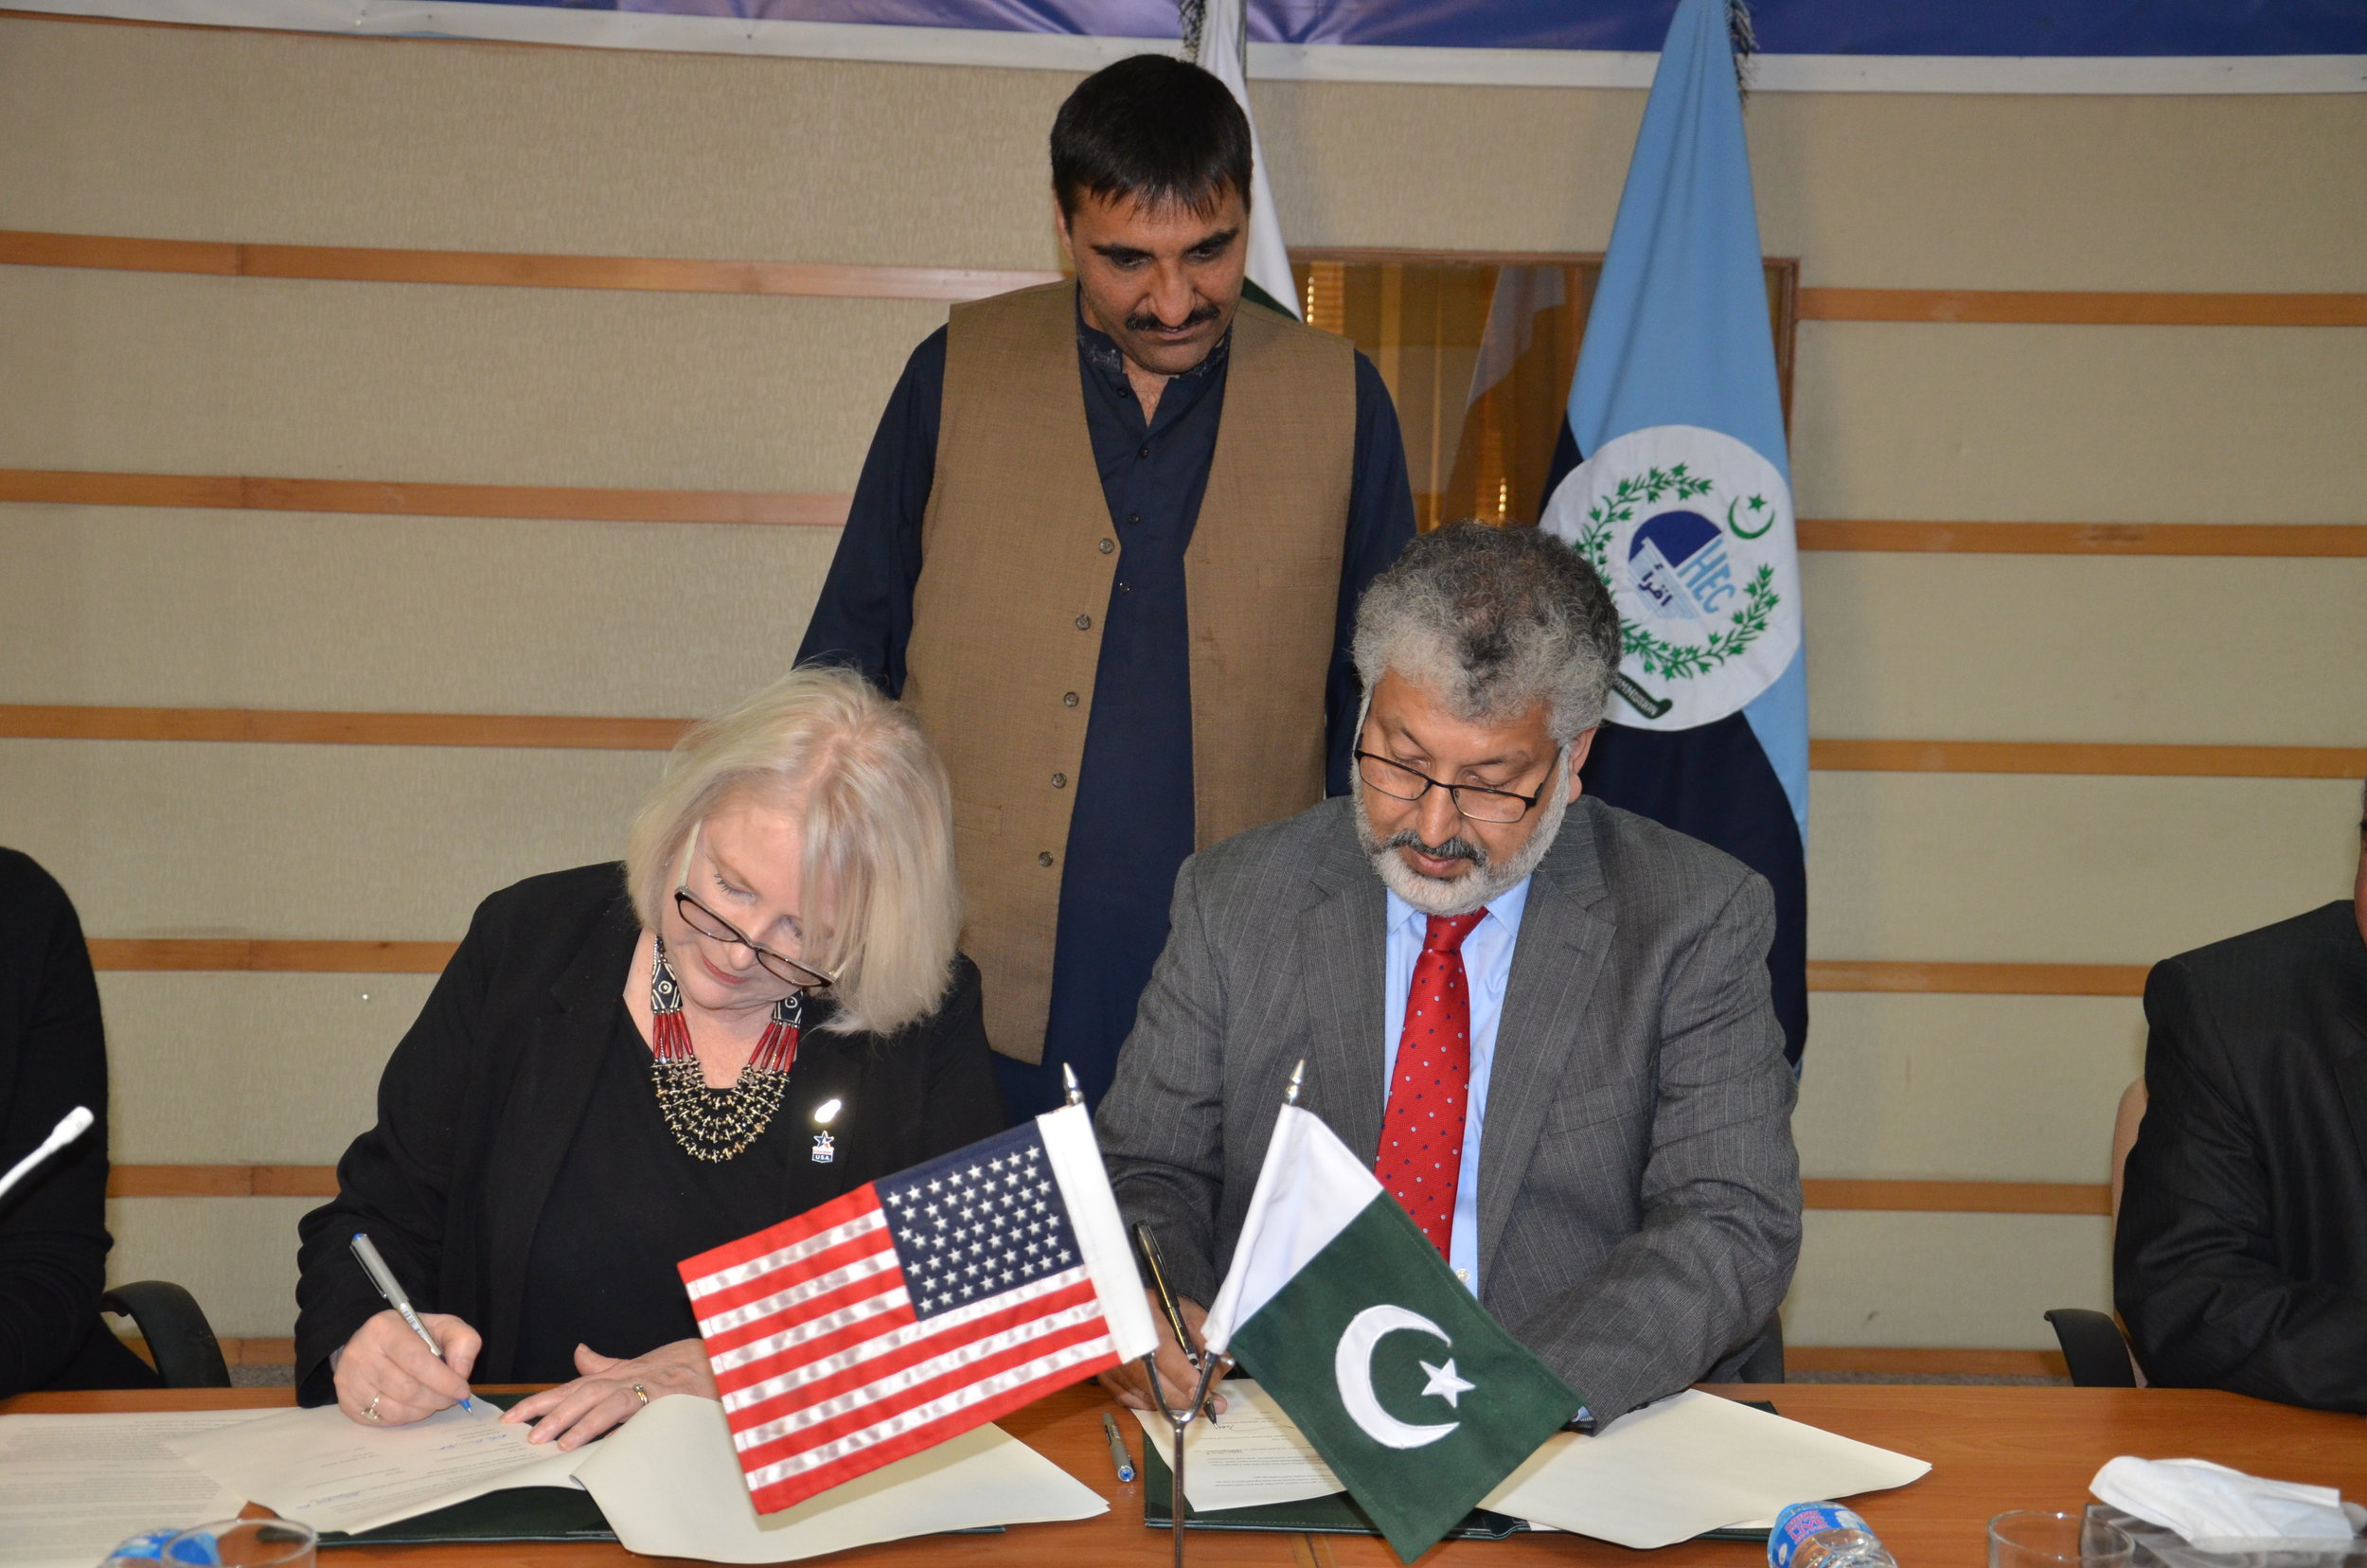 (L-R) Ms. Rita Akhtar, Executive Director, USEFP and Dr. Mukhtar Ahmad, Chairman, HEC